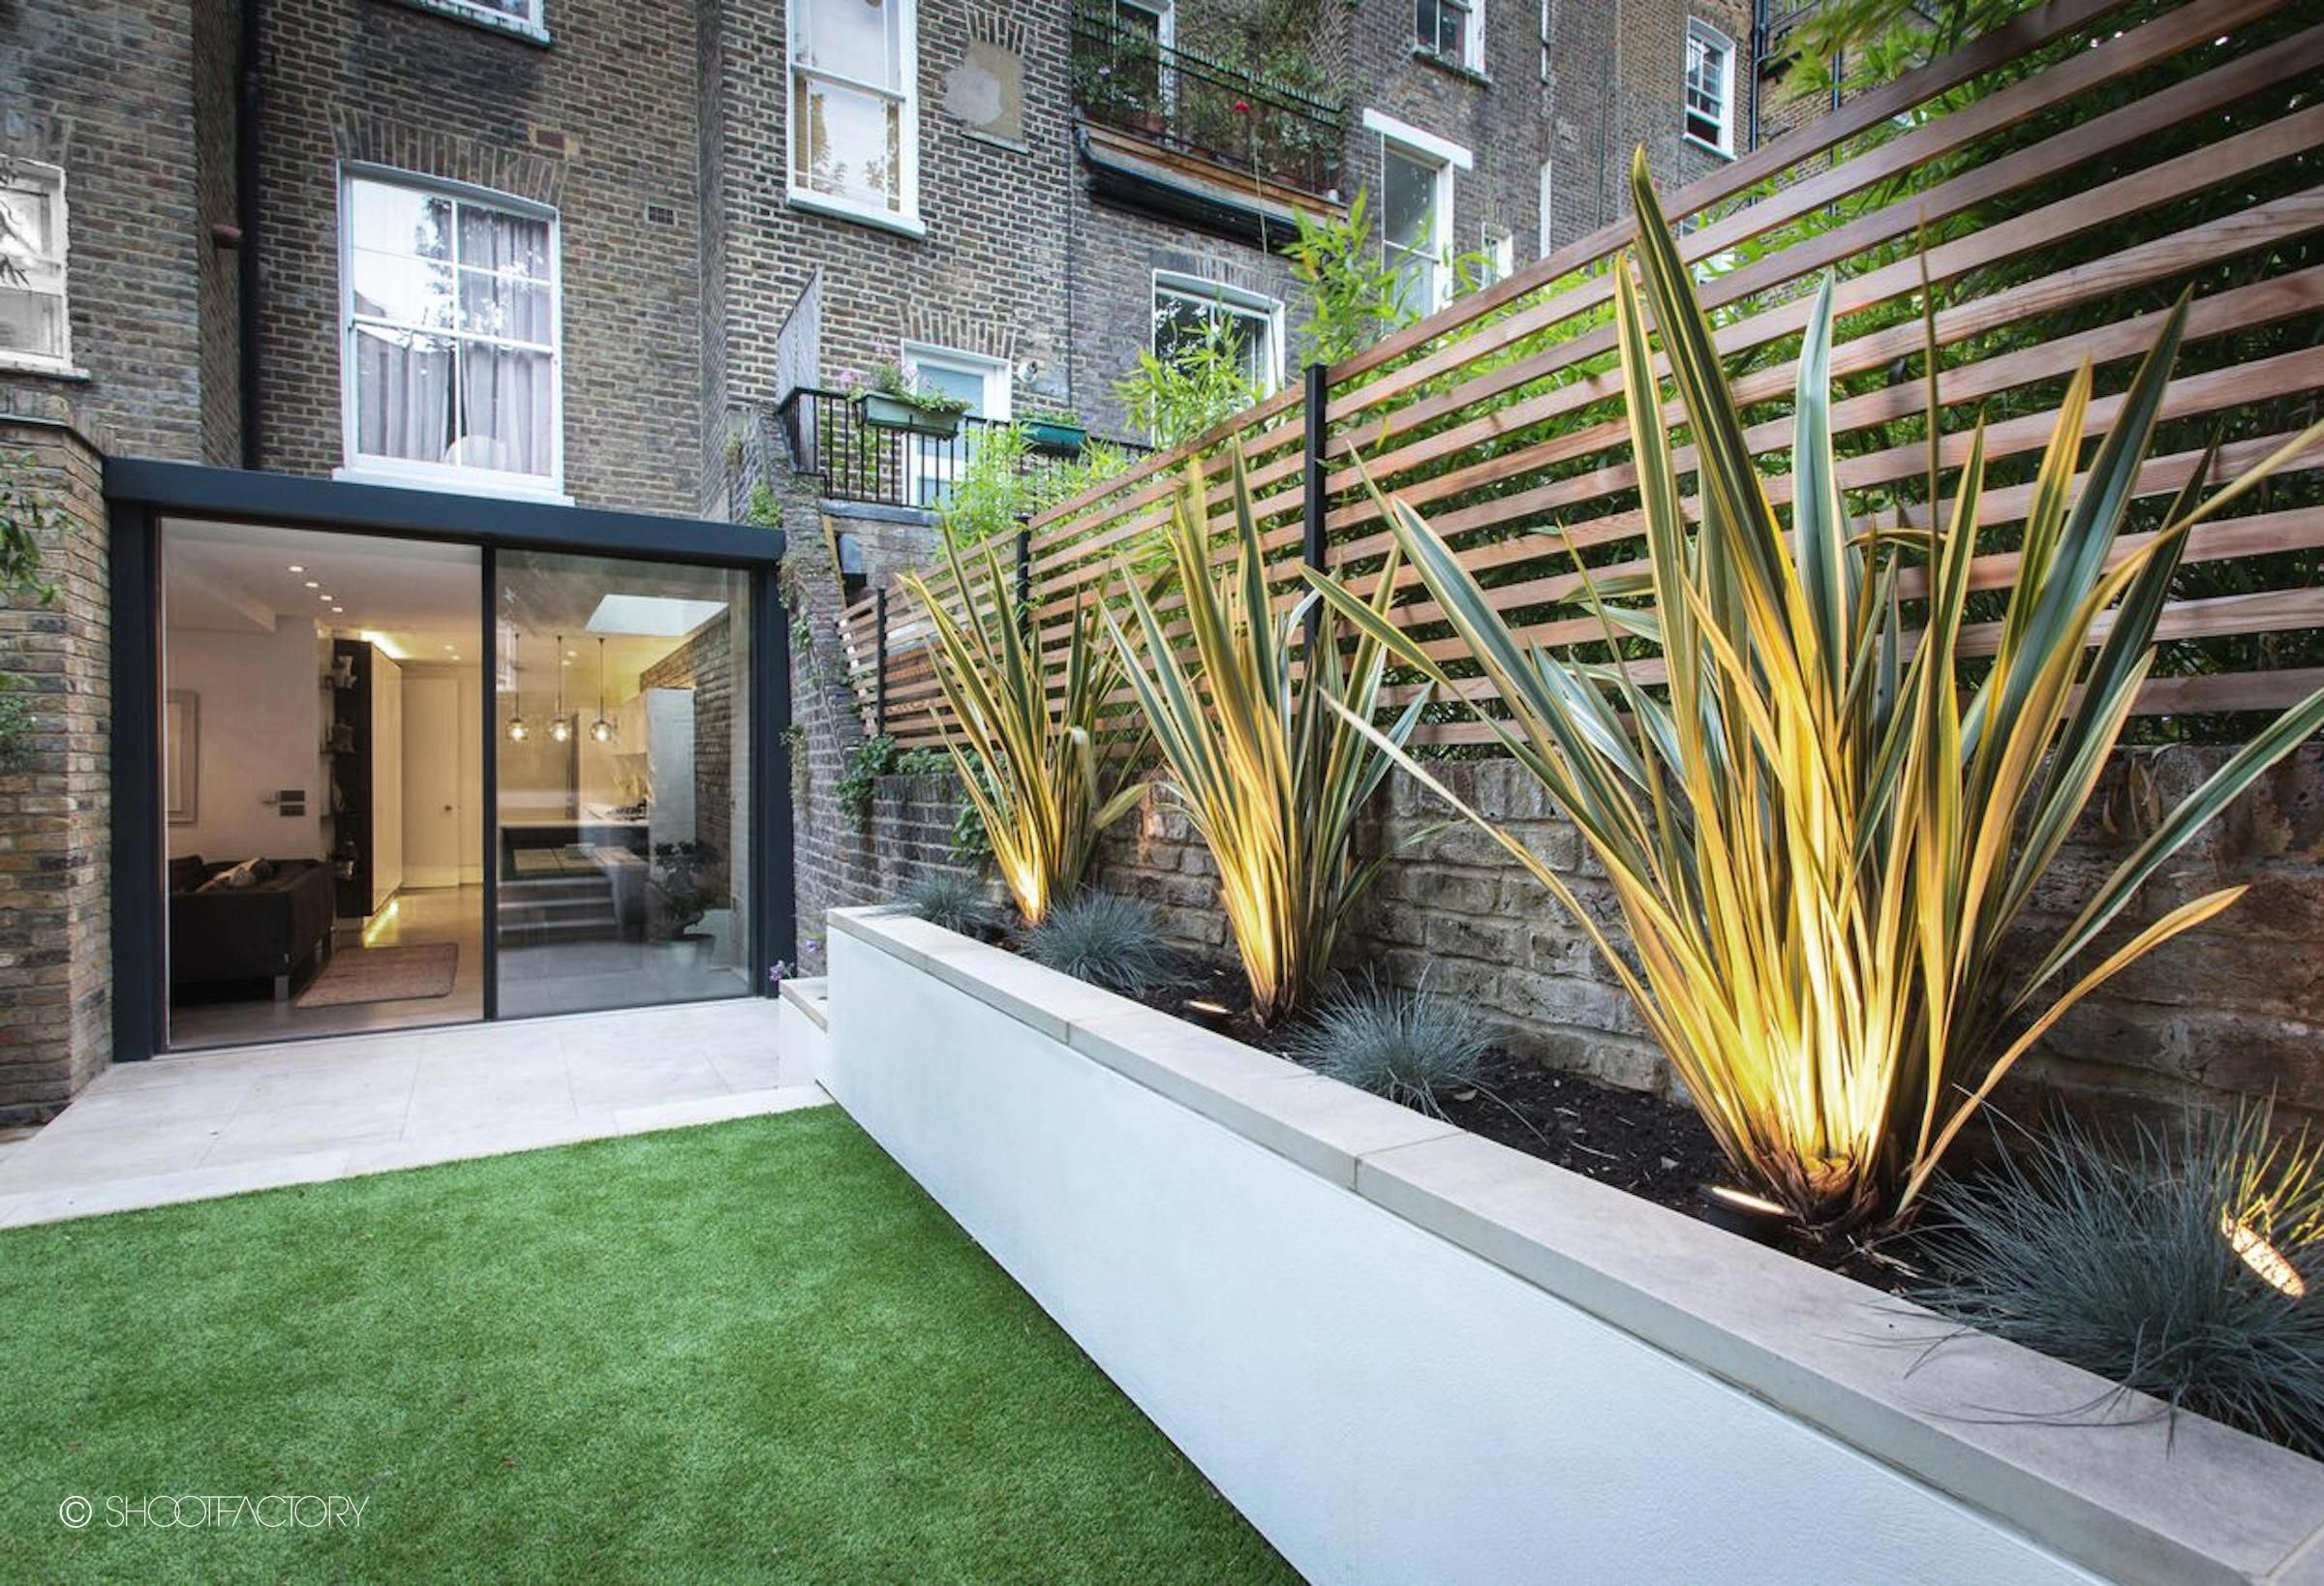 Leamington Road Villas by Studio 1 Architects is part of Modern garden design, Contemporary garden design, Garden architecture, Modern garden, Small garden design, Contemporary garden - Studio 1 Architects took on the task of turning a one bedroom flat in Notting Hill into a three bedroom, three bathroom home for the architect himself